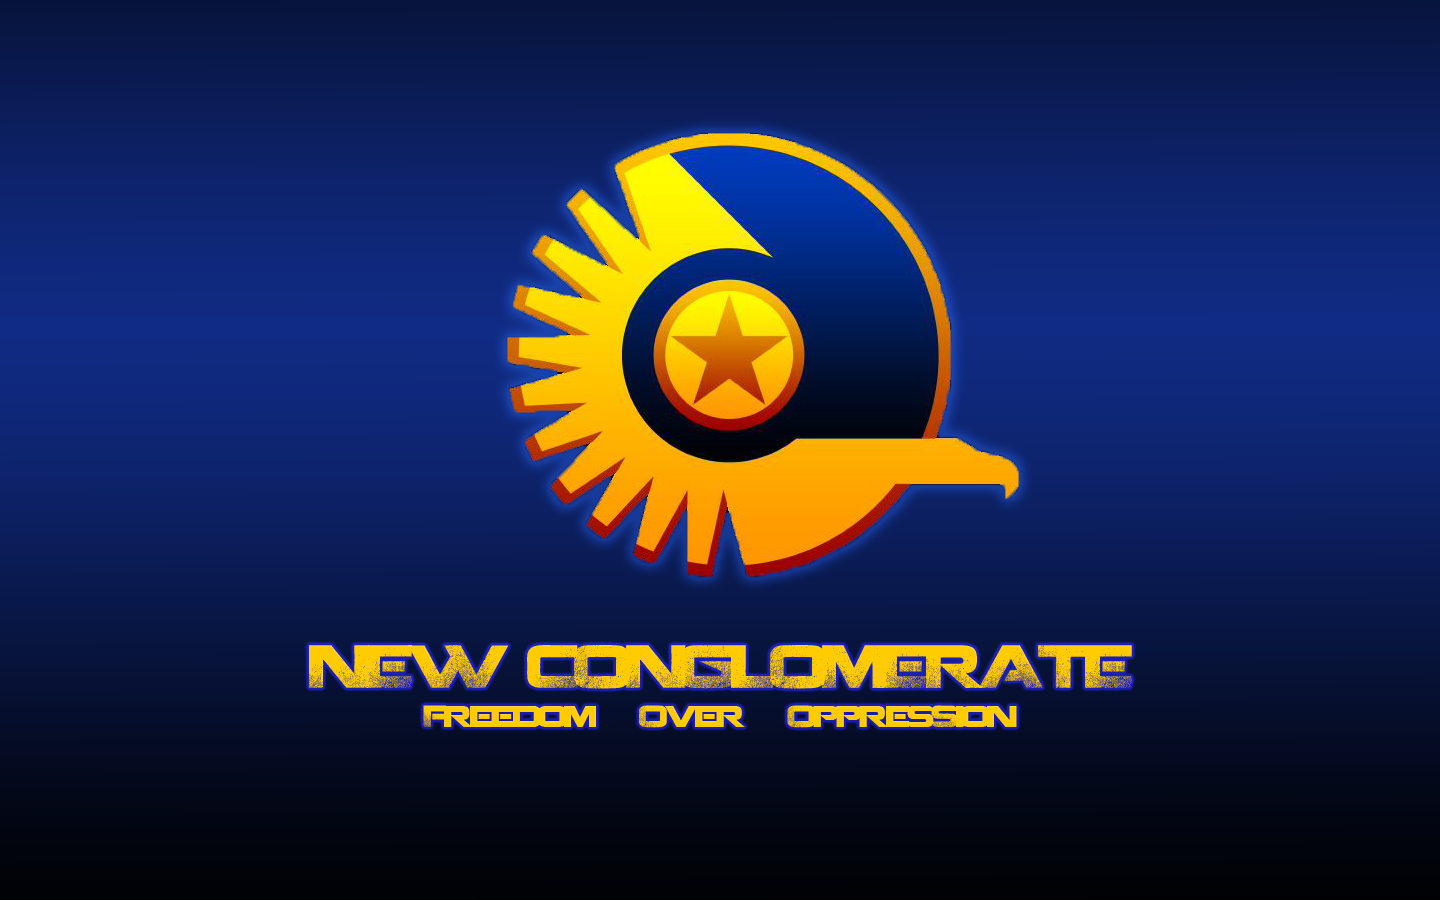 http://fc08.deviantart.net/fs70/f/2012/233/2/6/new_conglomerate_wallpaper_by_ugsspypie-d5by43q.png